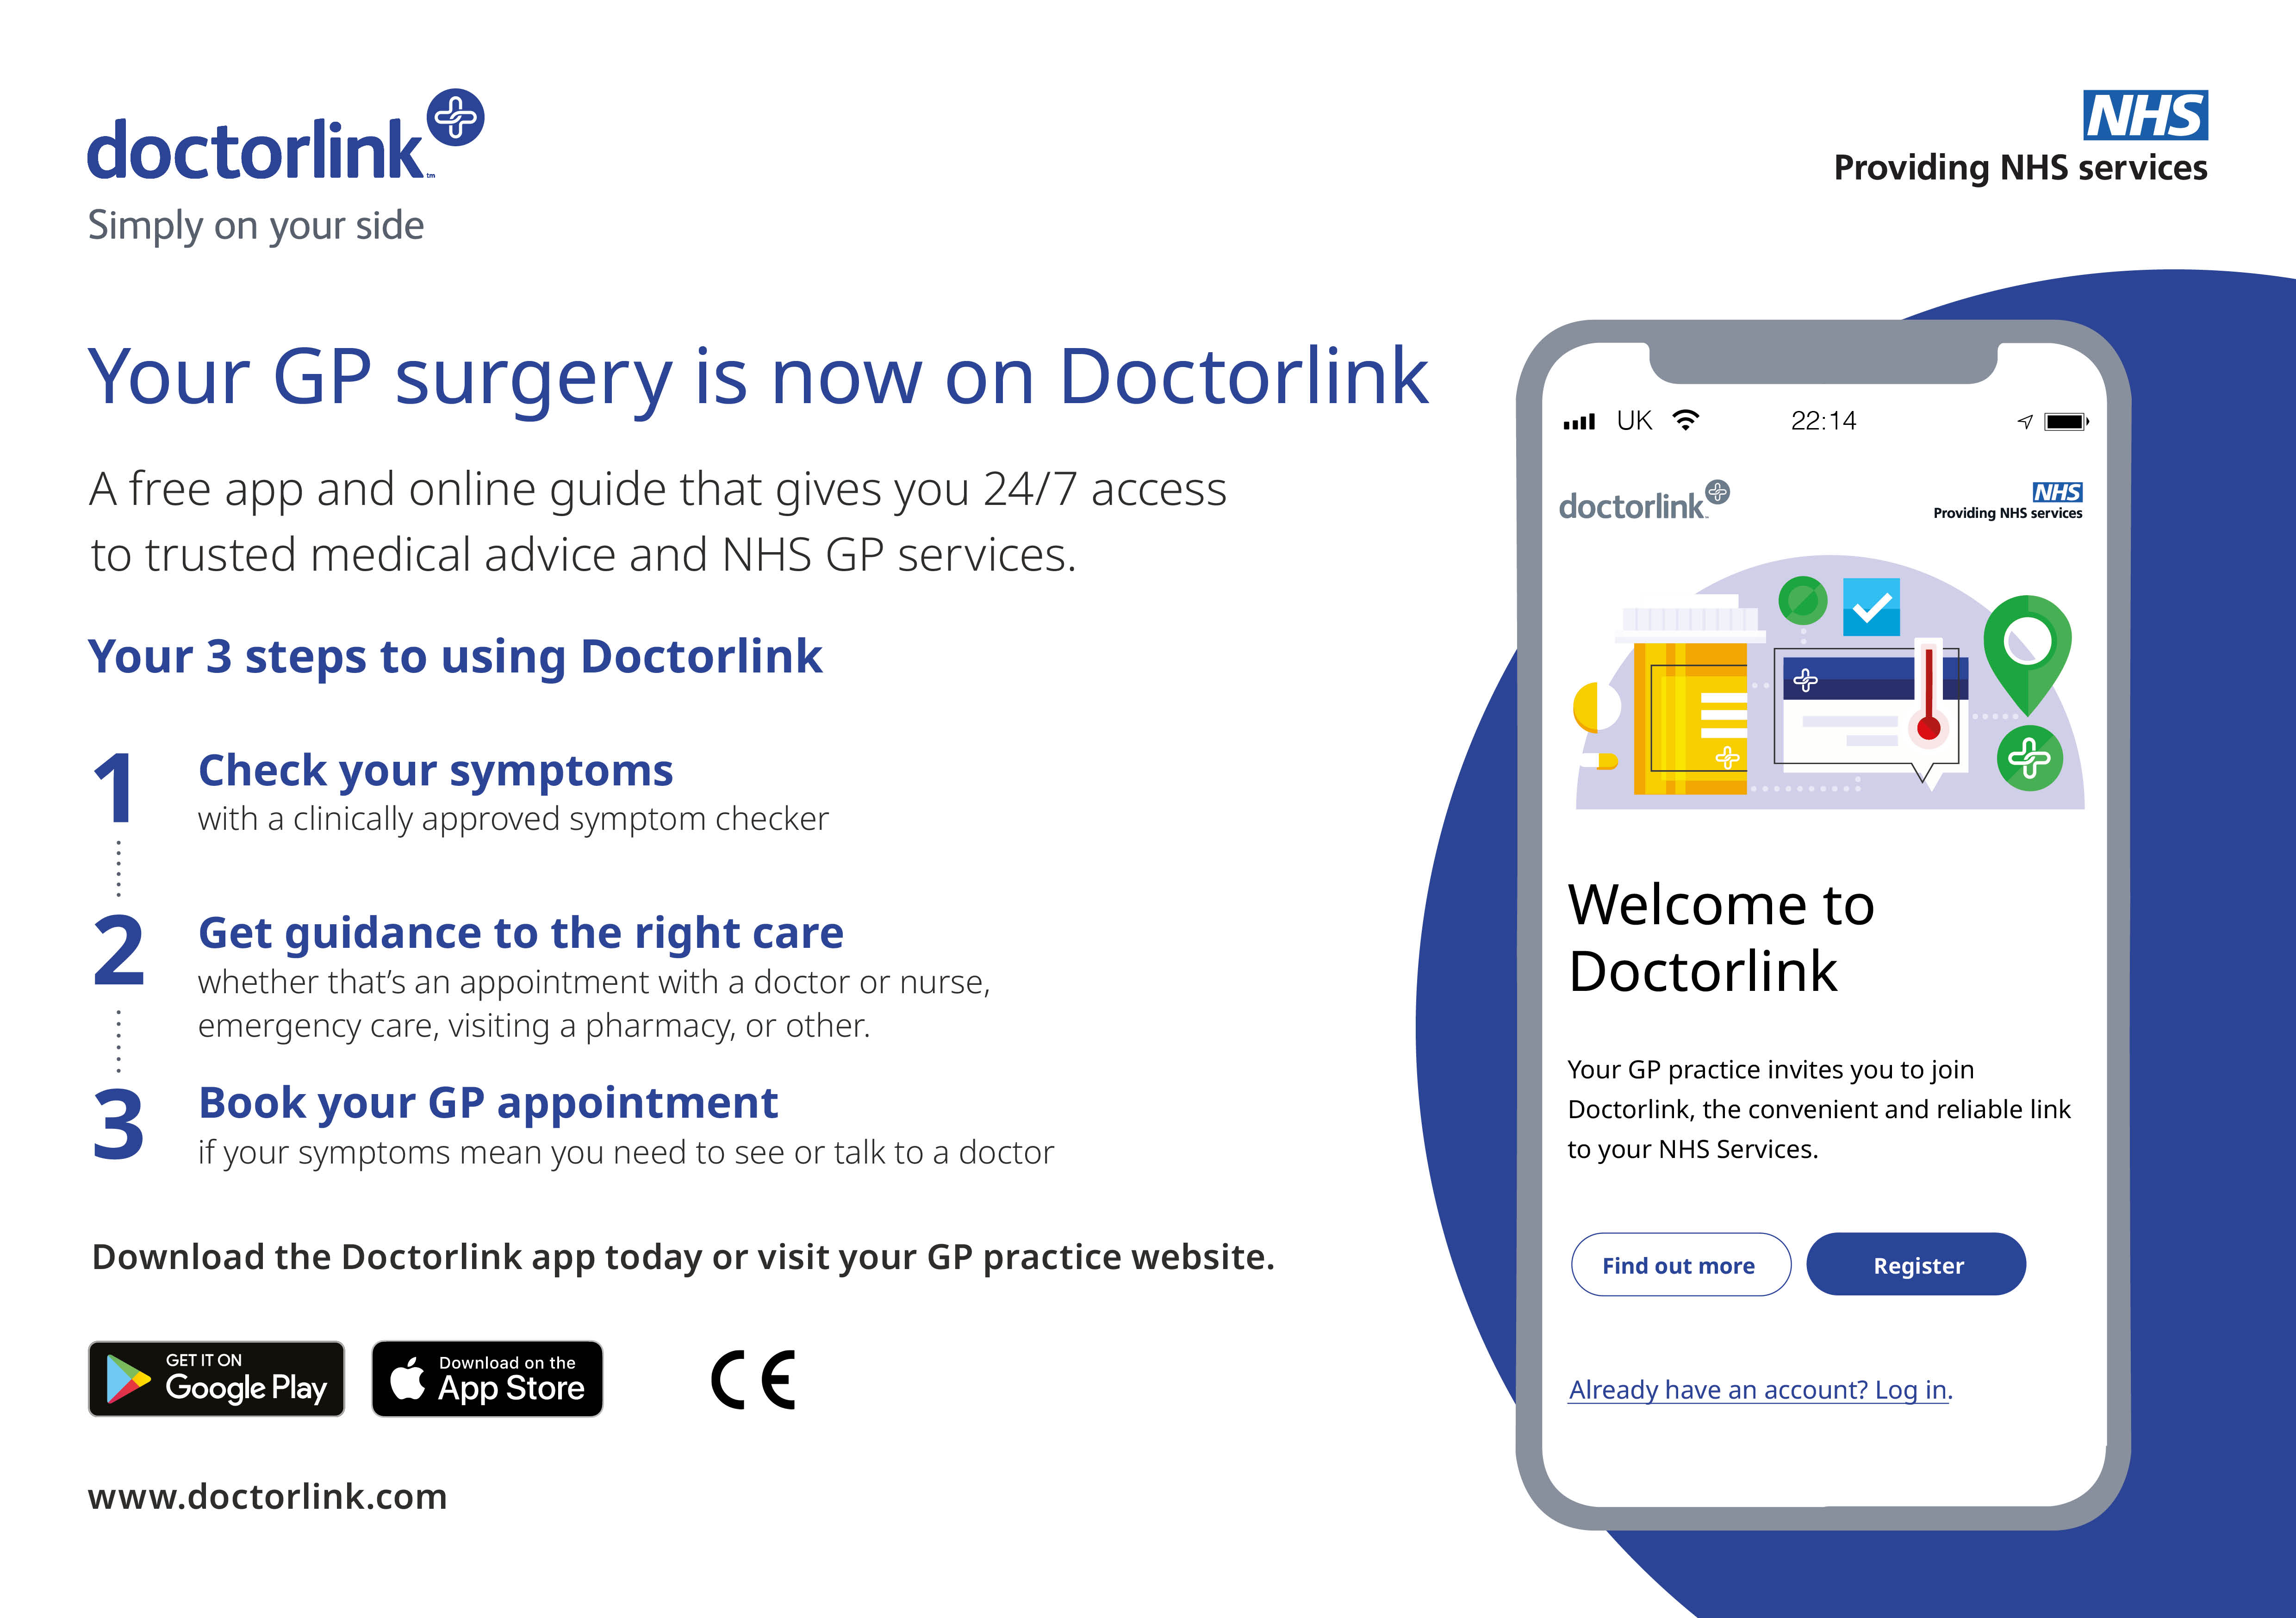 Your GP surgery is now on Doctor Link - text in full below